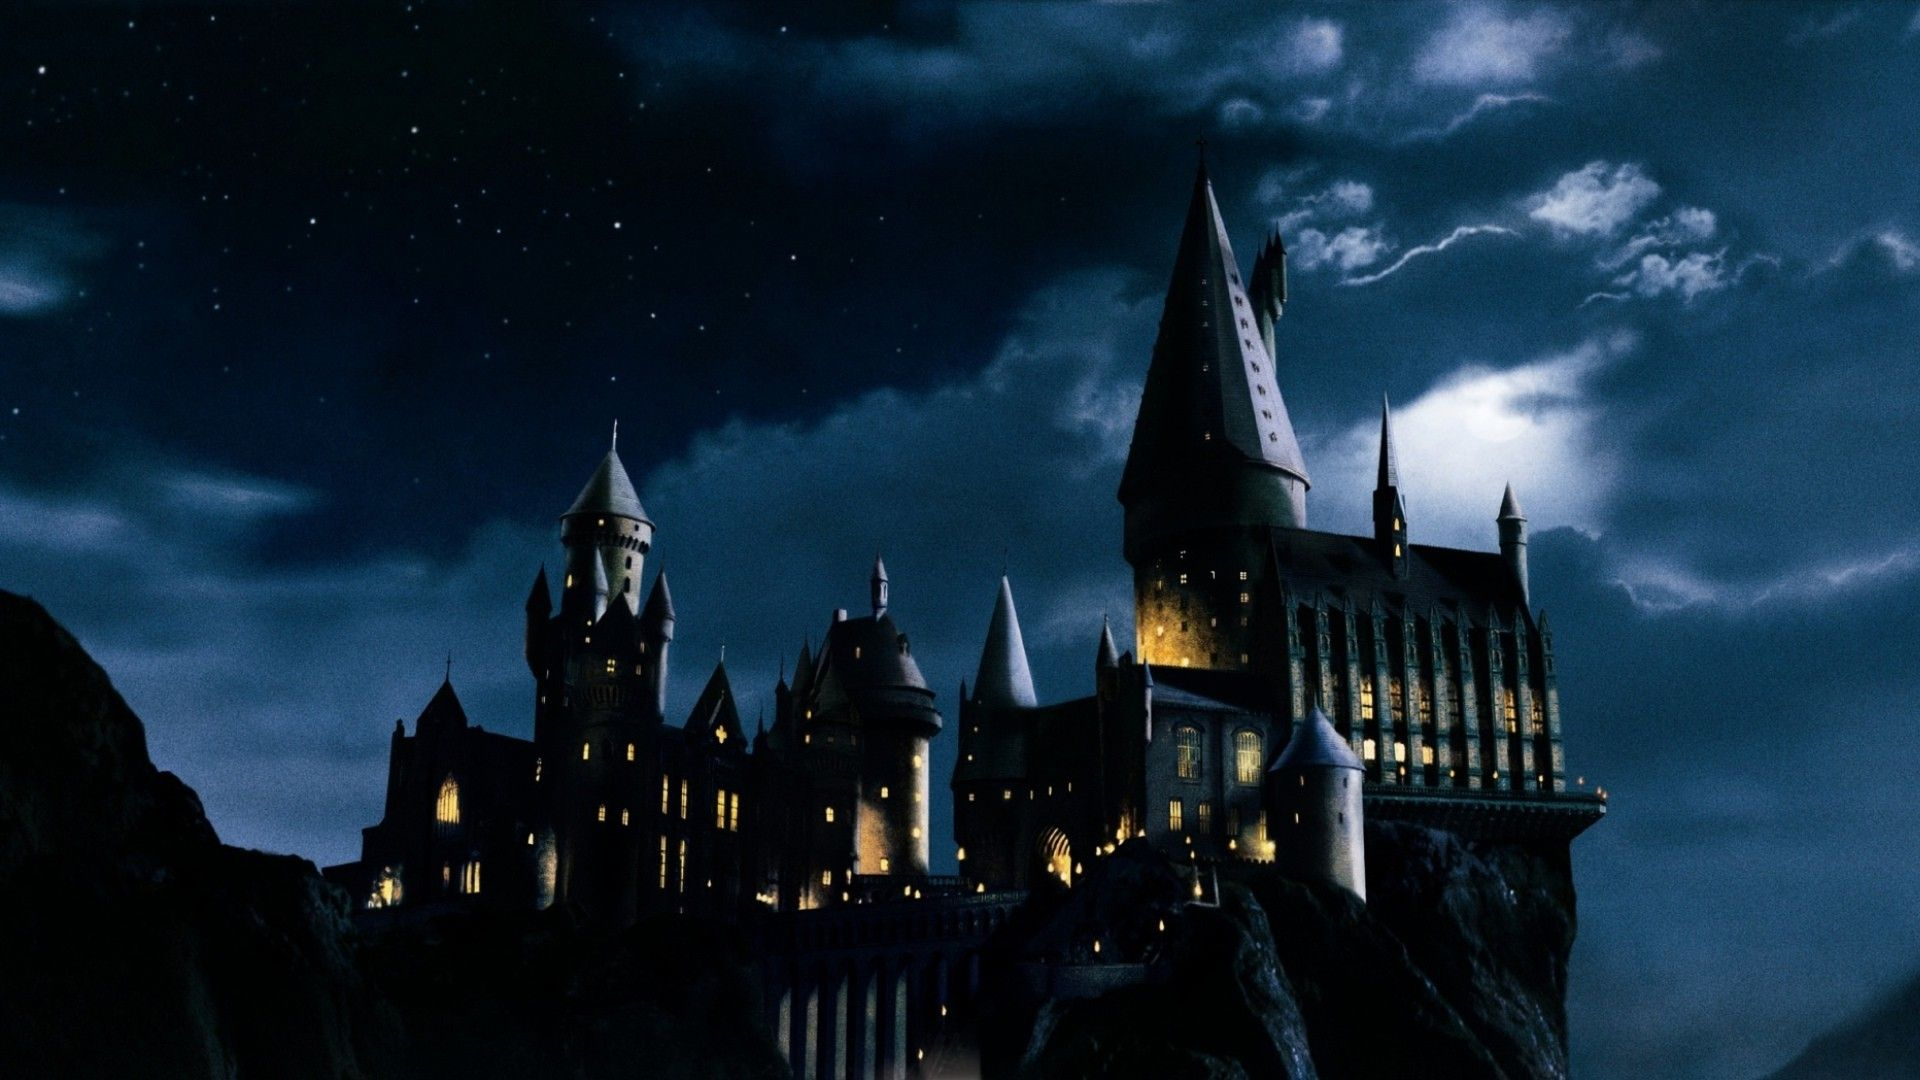 Harry Potter Wallpaper Hogwarts Wallpaper Harry Potter Wallpaper Hogwarts Castle Harry Potter Images